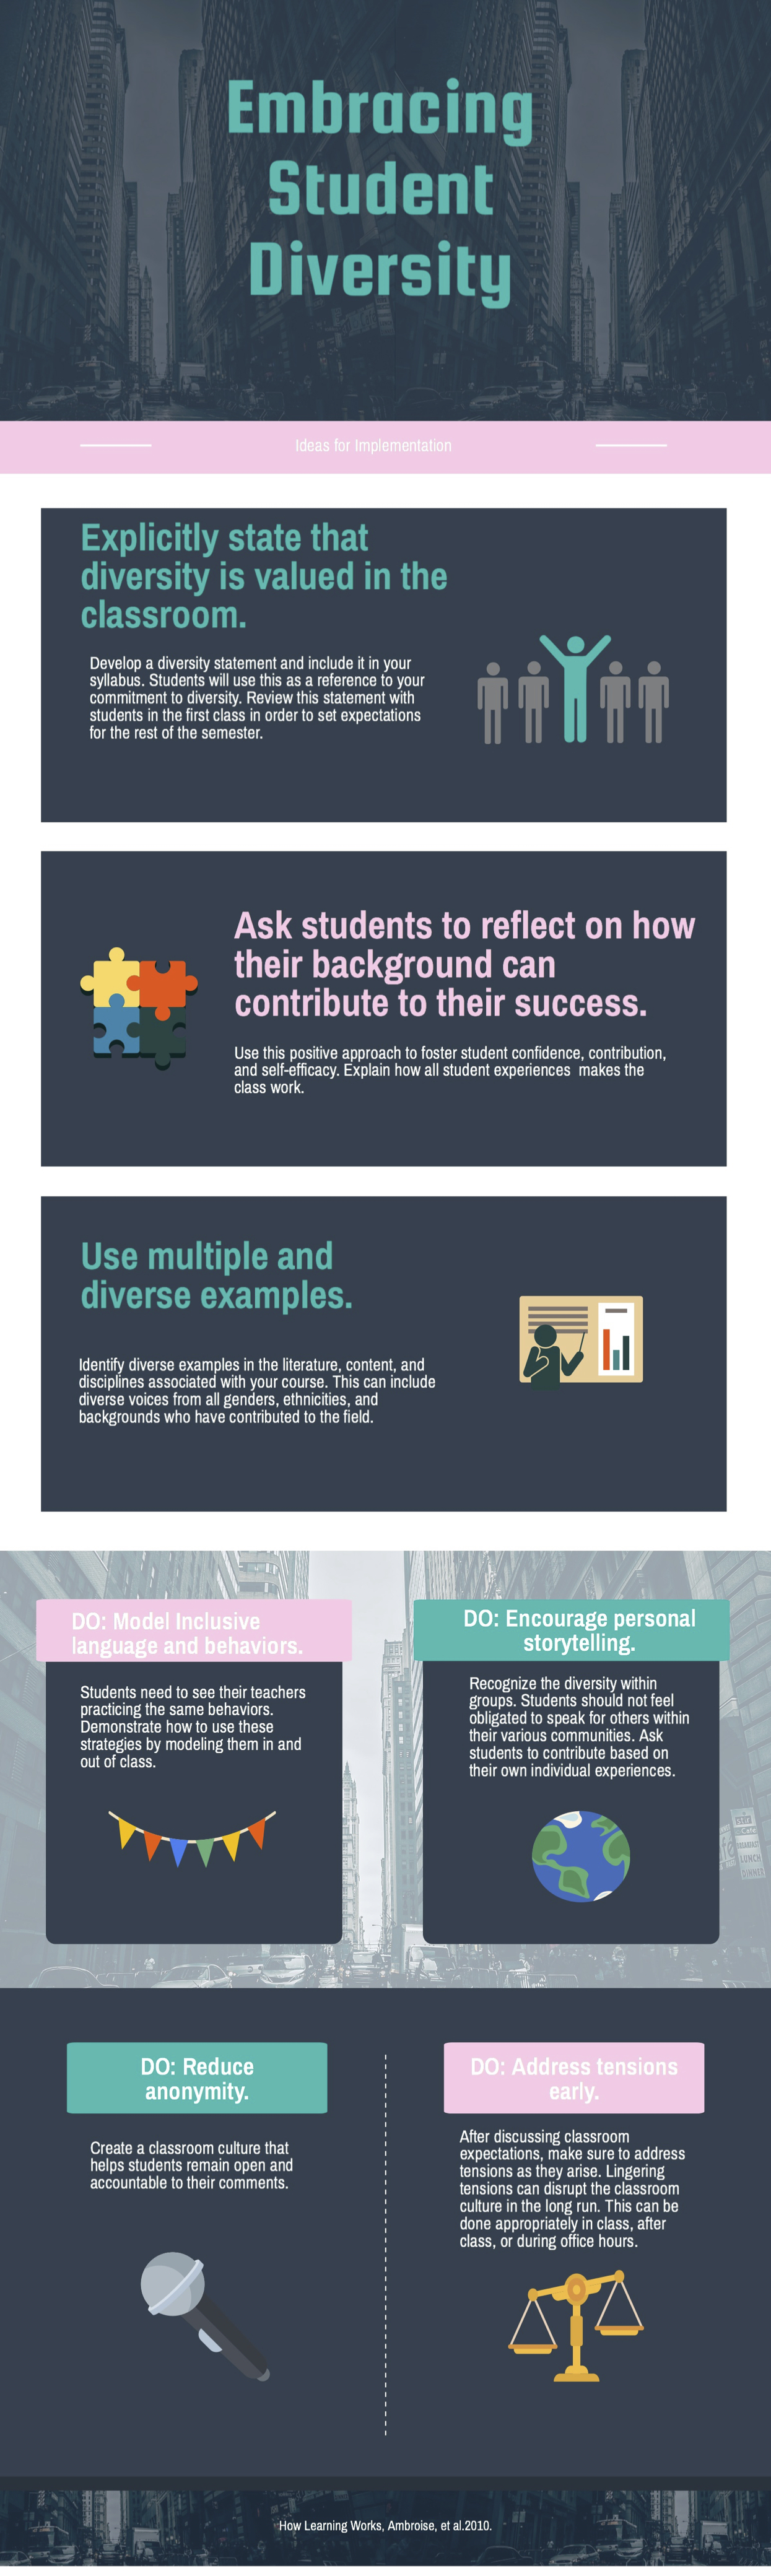 Tips for Embracing Student Diversity